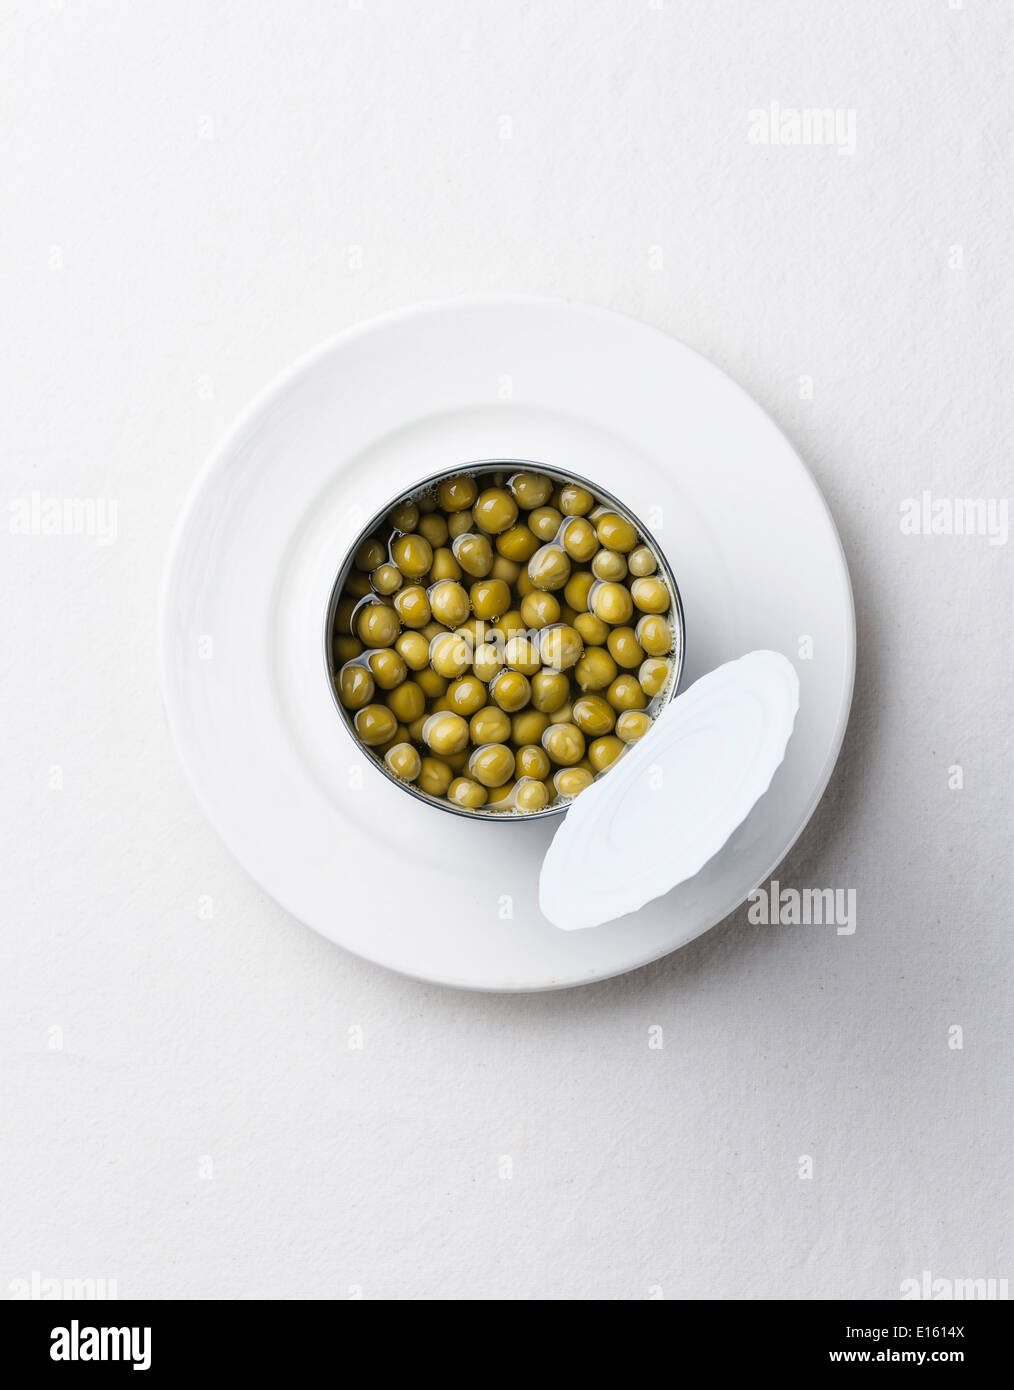 Canned green peas in tin can - Stock Image